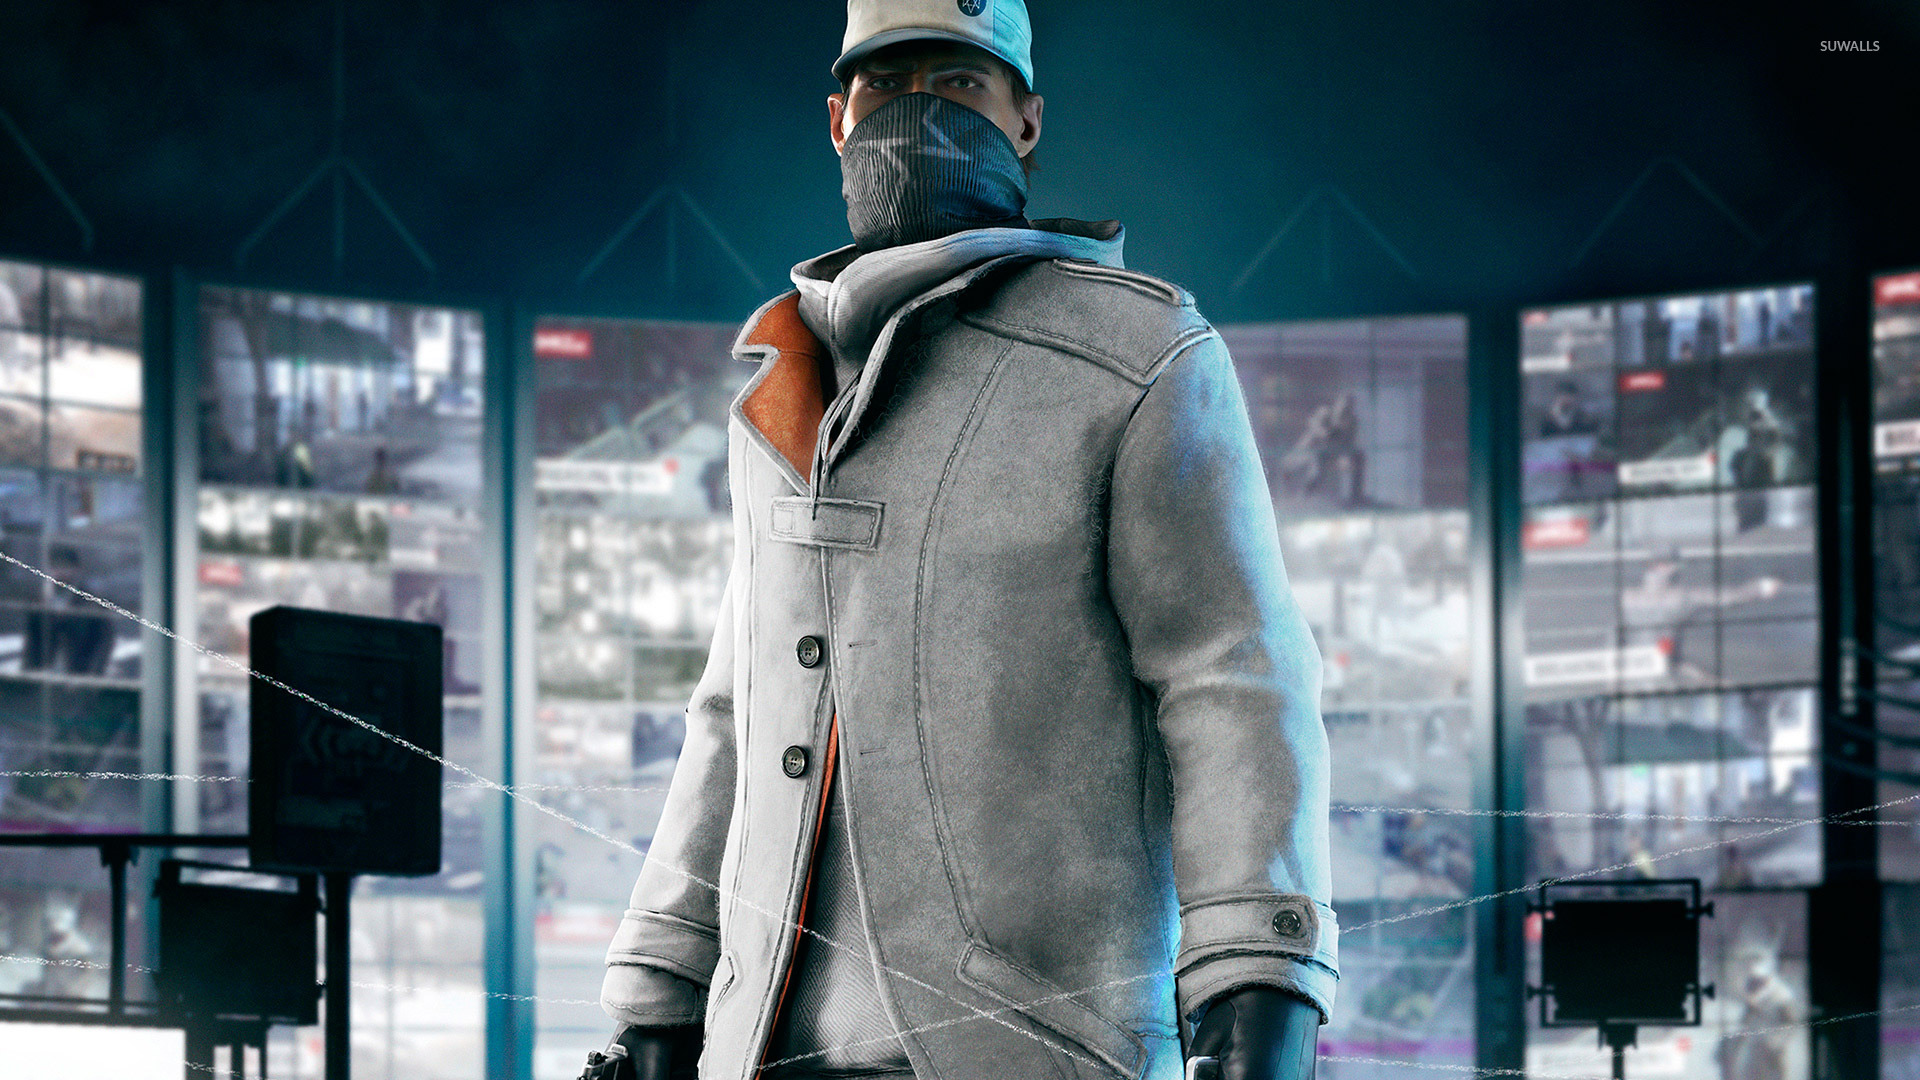 Hd Quotes Wallpapers For Windows 7 Aiden Pearce Watch Dogs 4 Wallpaper Game Wallpapers